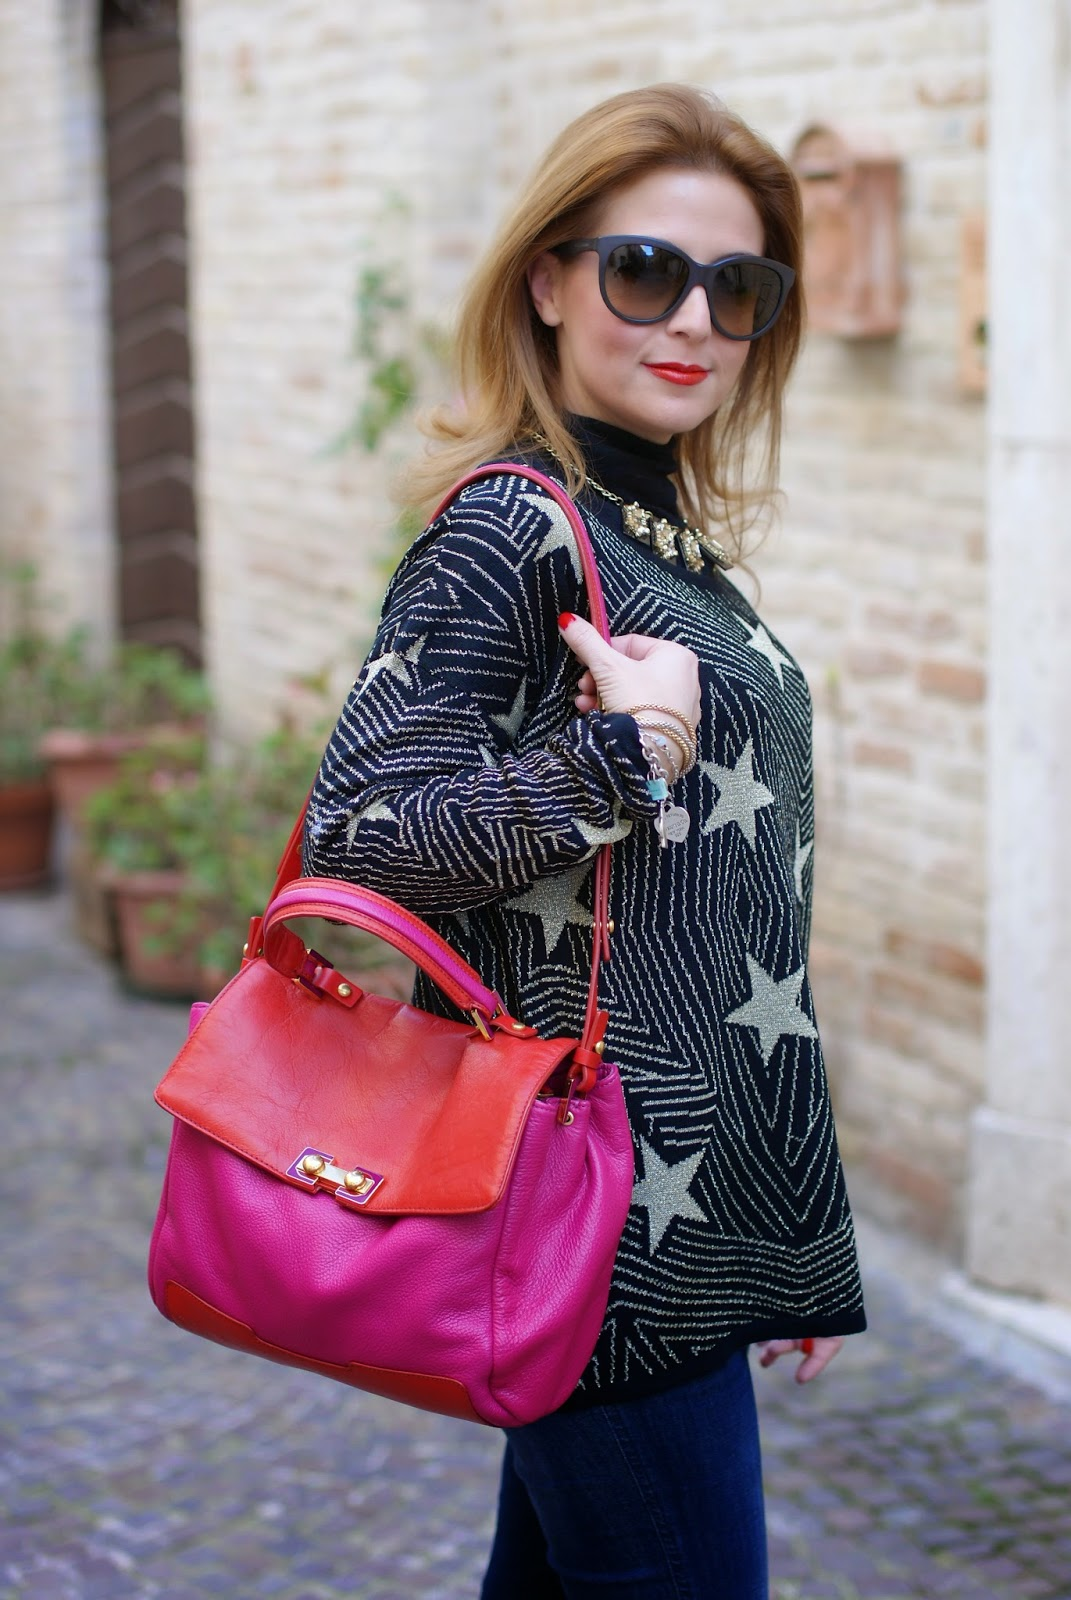 Mismash starry sweater, Marc by Marc Jacobs satchel, maglione con stelle, Fashion and Cookies, fashion blogger